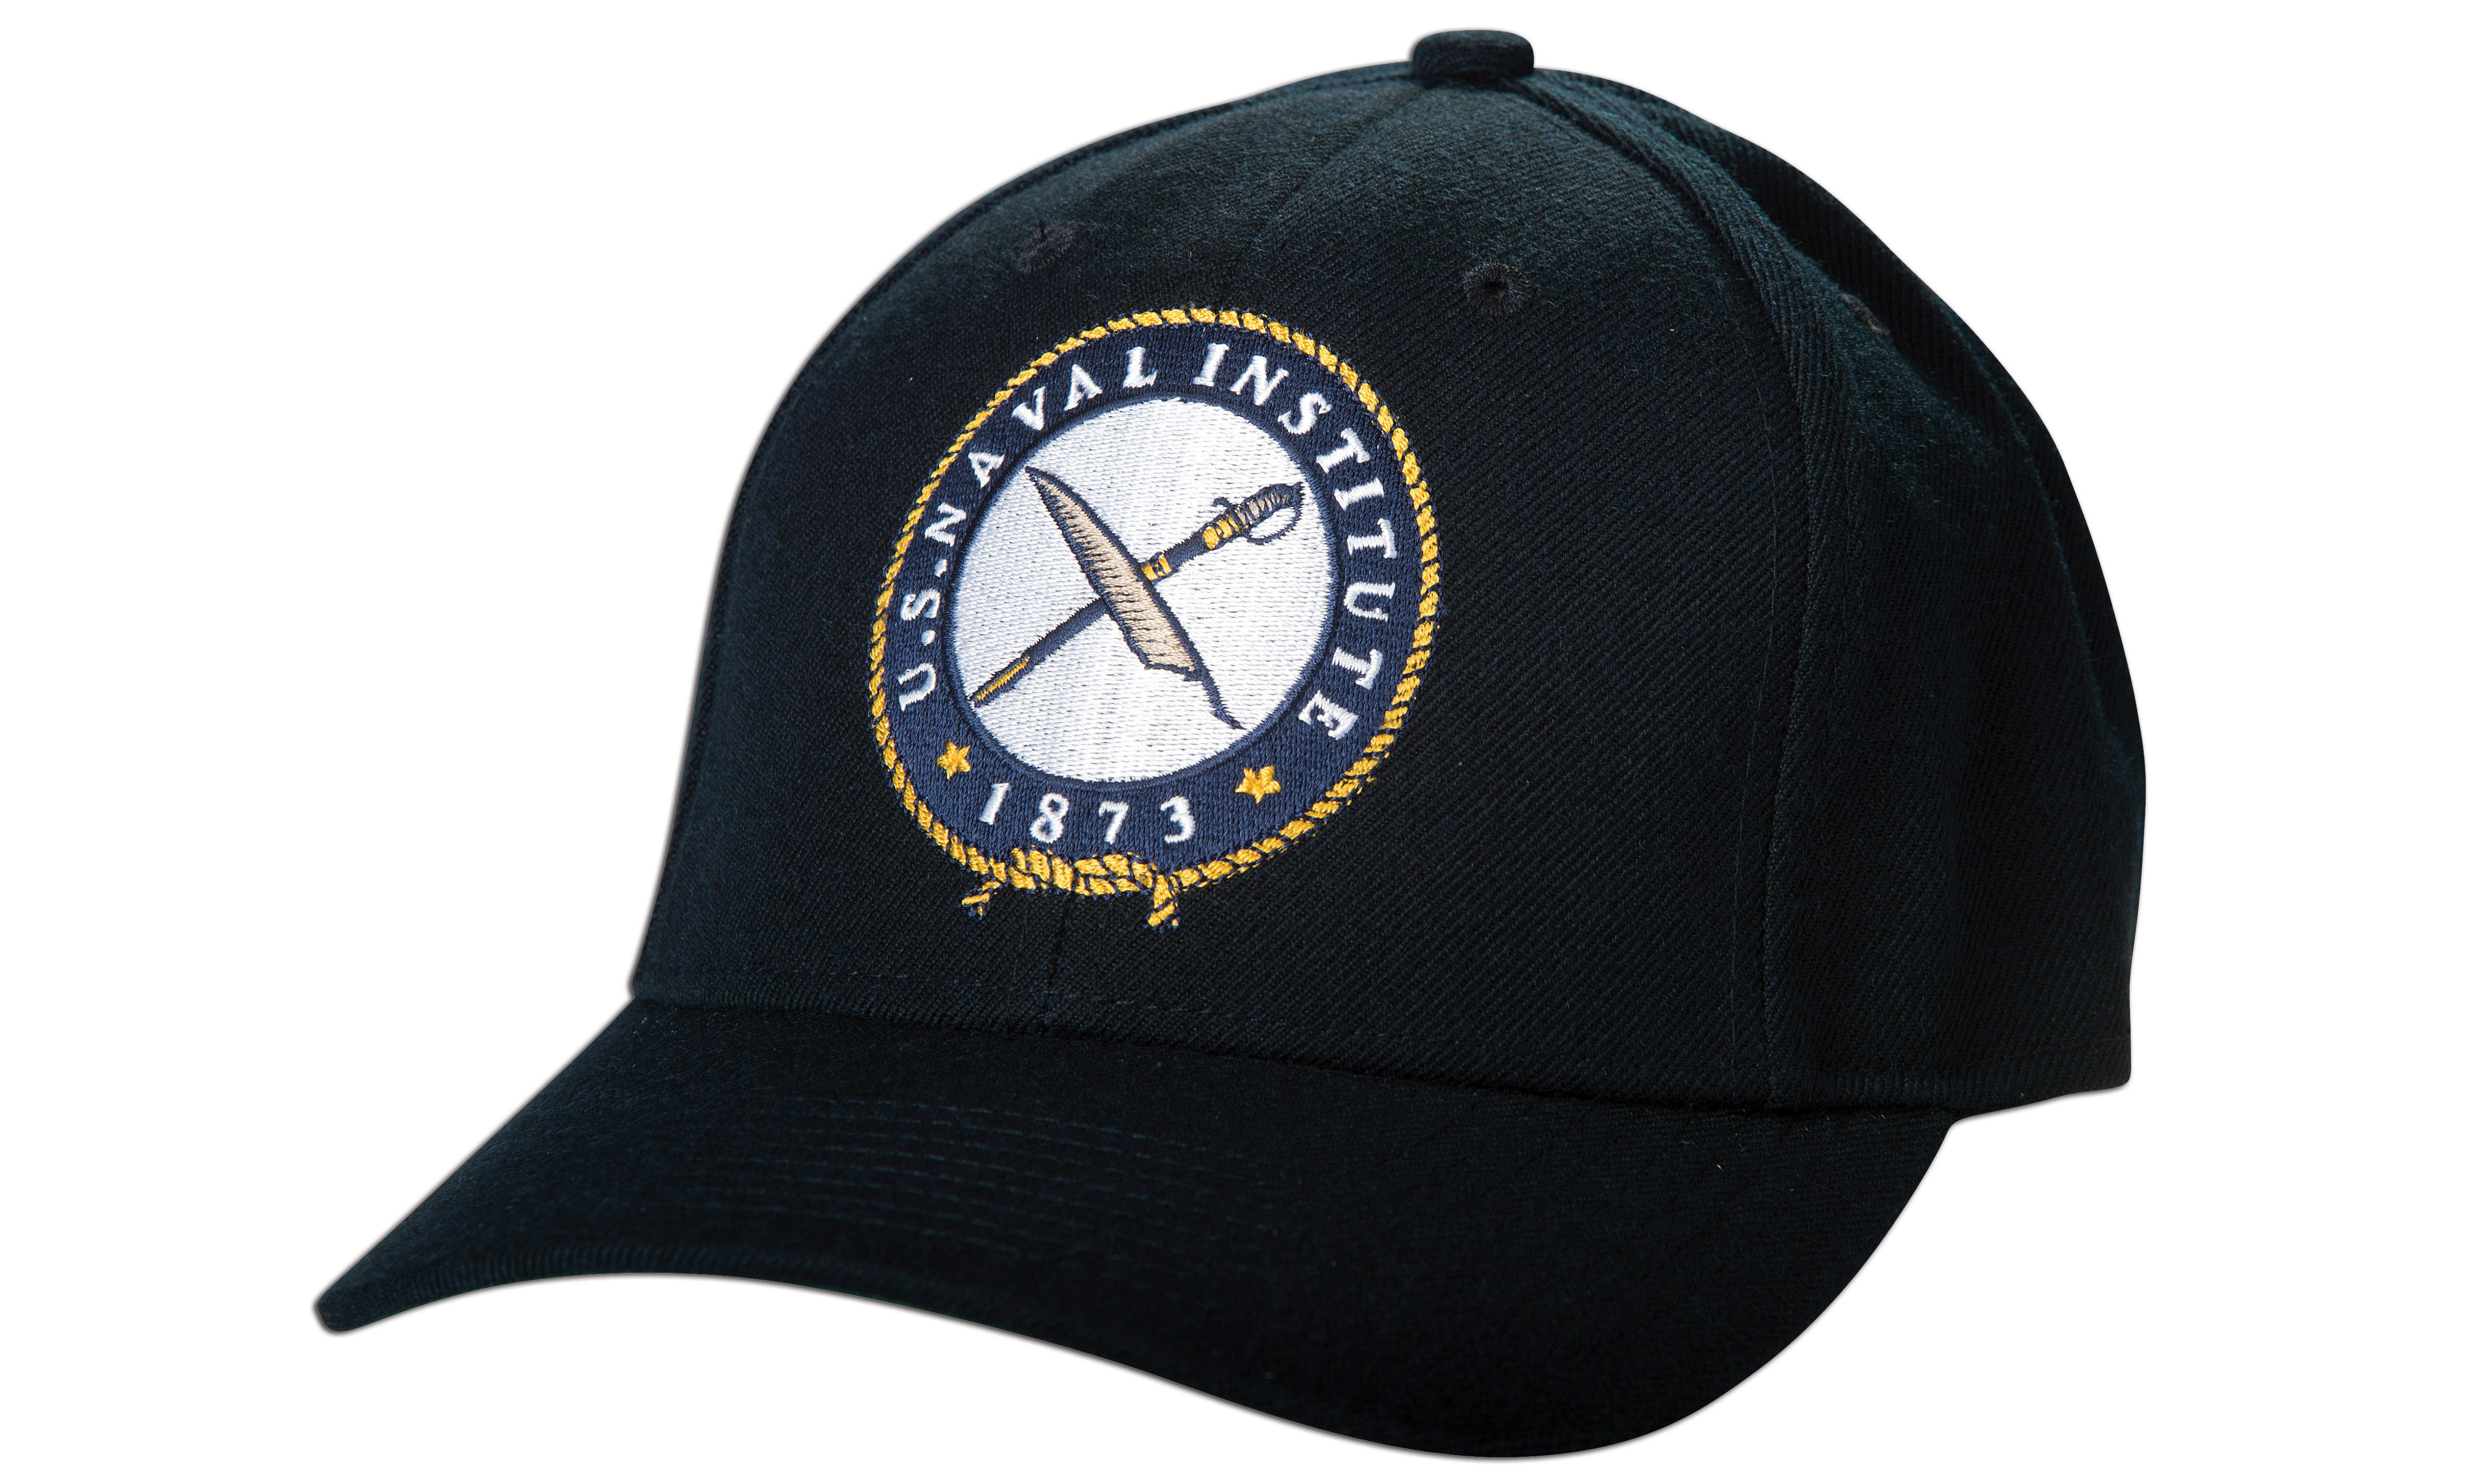 U.S. Naval Institute Baseball Cap